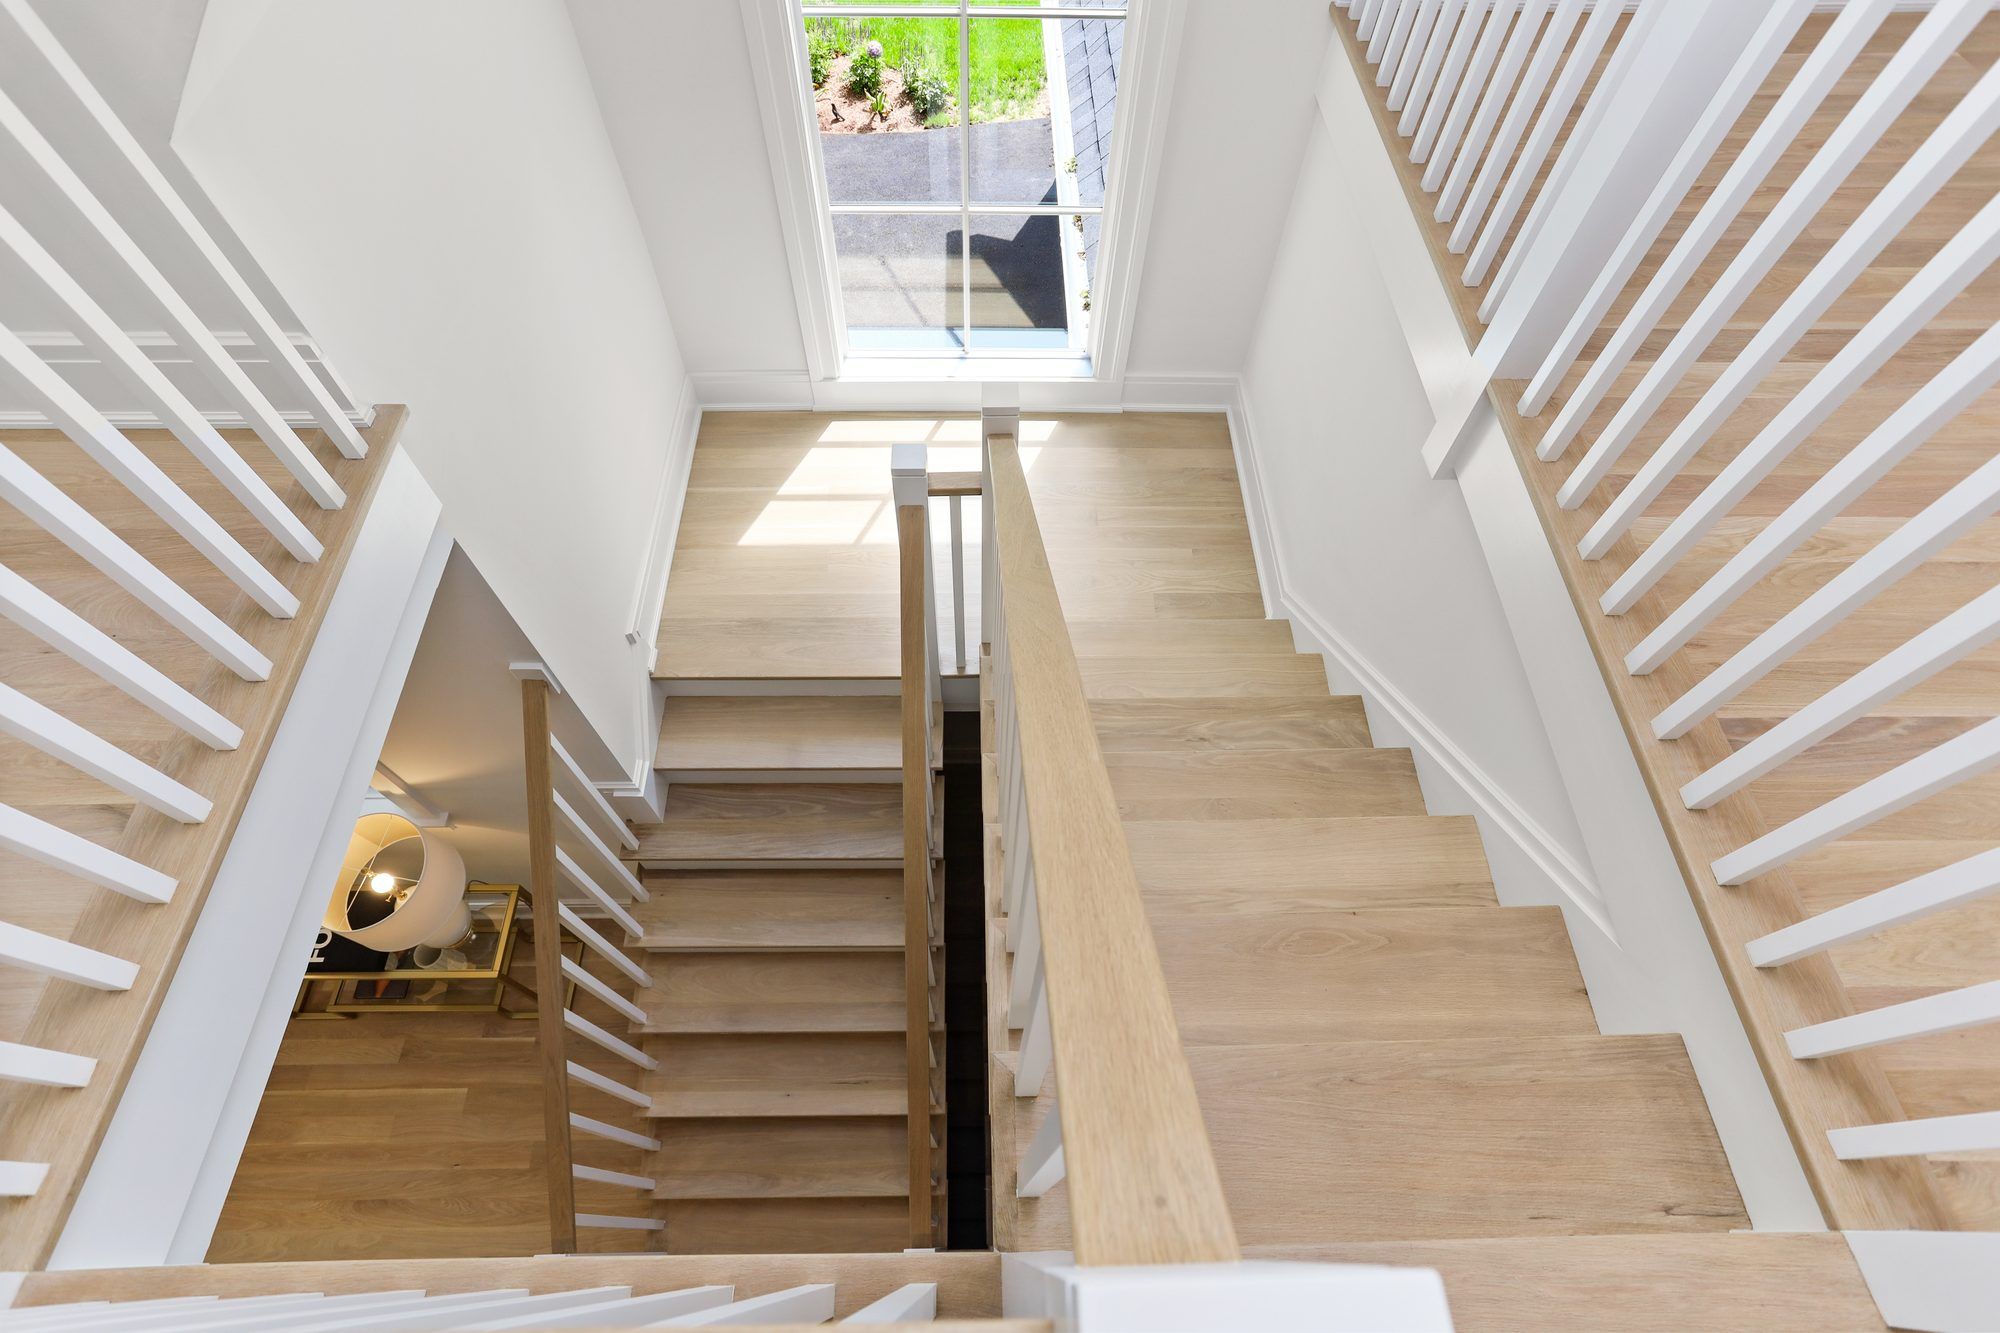 Lightly stained pale hardwood floors with matching stairs.